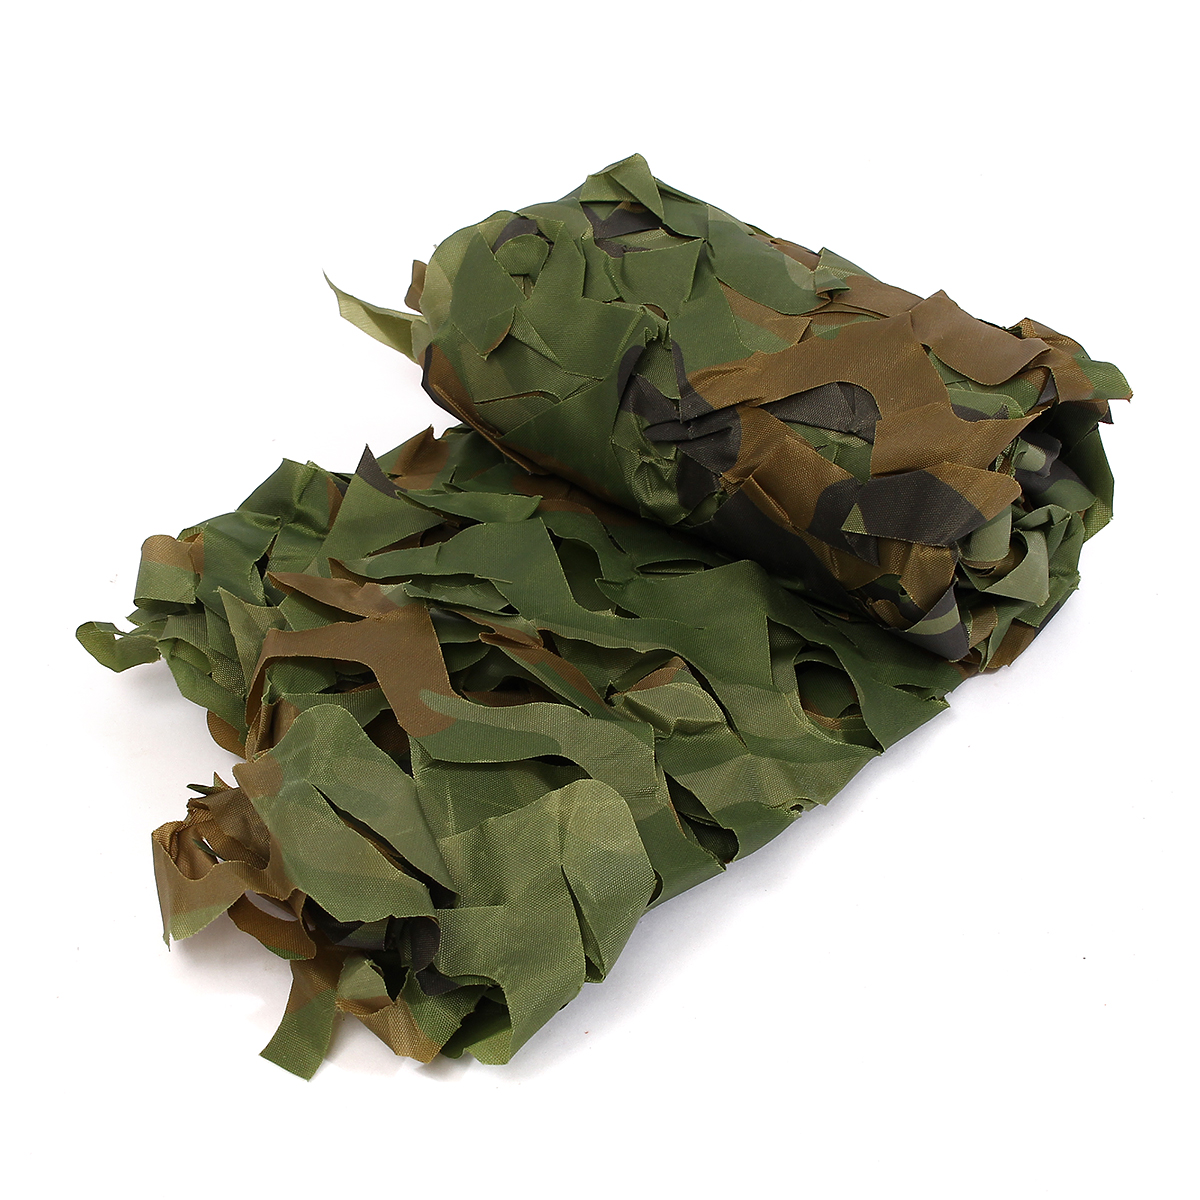 1mx1.5m Camo Netting Camouflage Net for Car Cover Camping Woodland Military Hunting Shooting